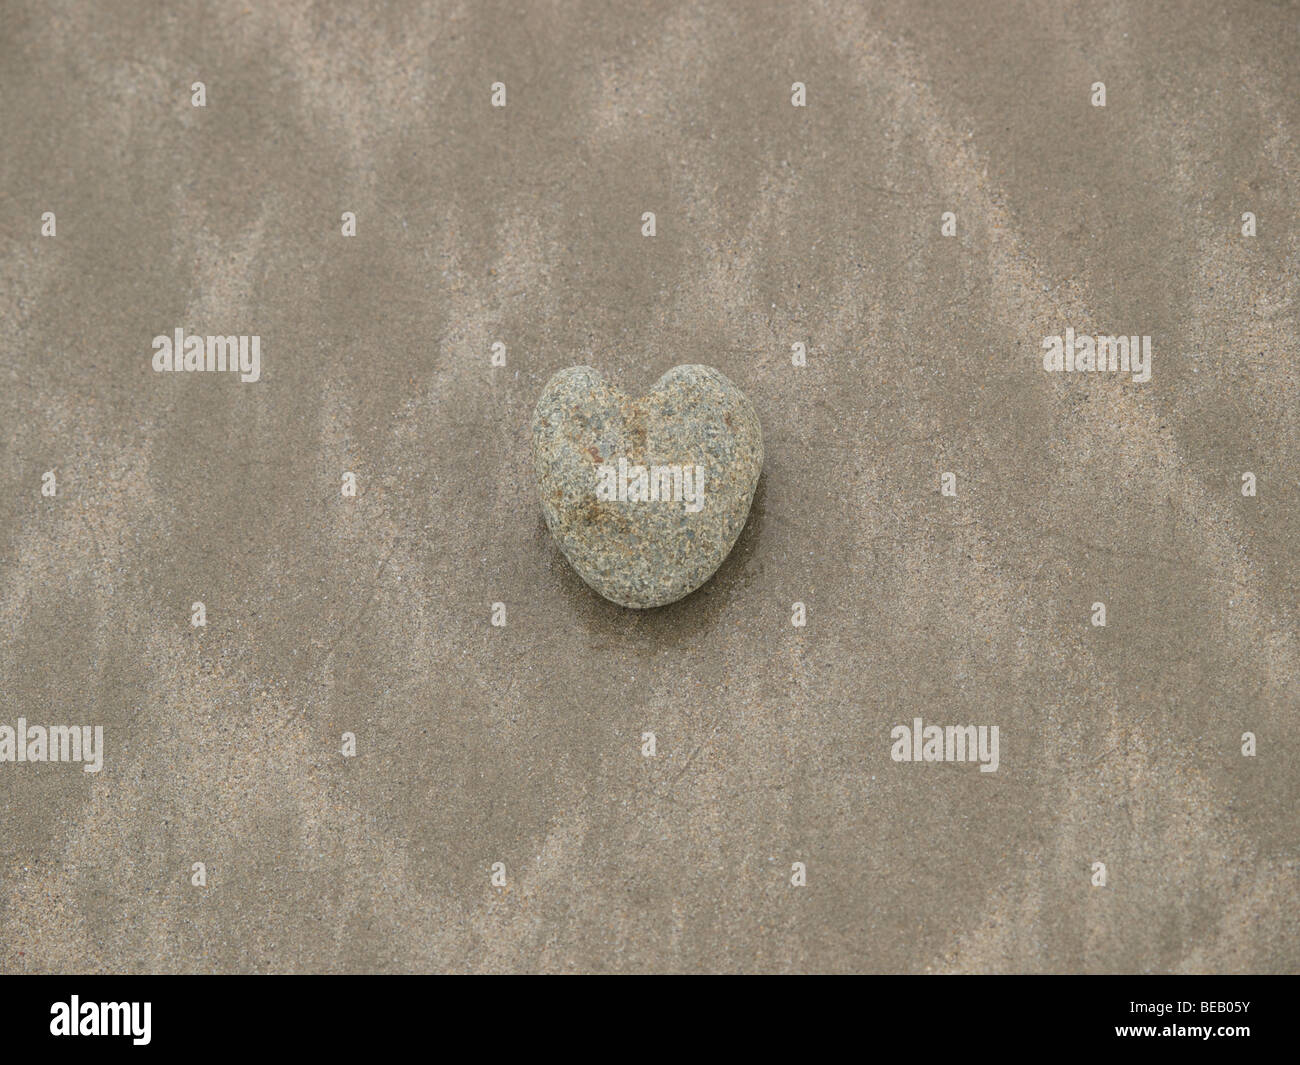 Heart of stone on a wet beach - Stock Image